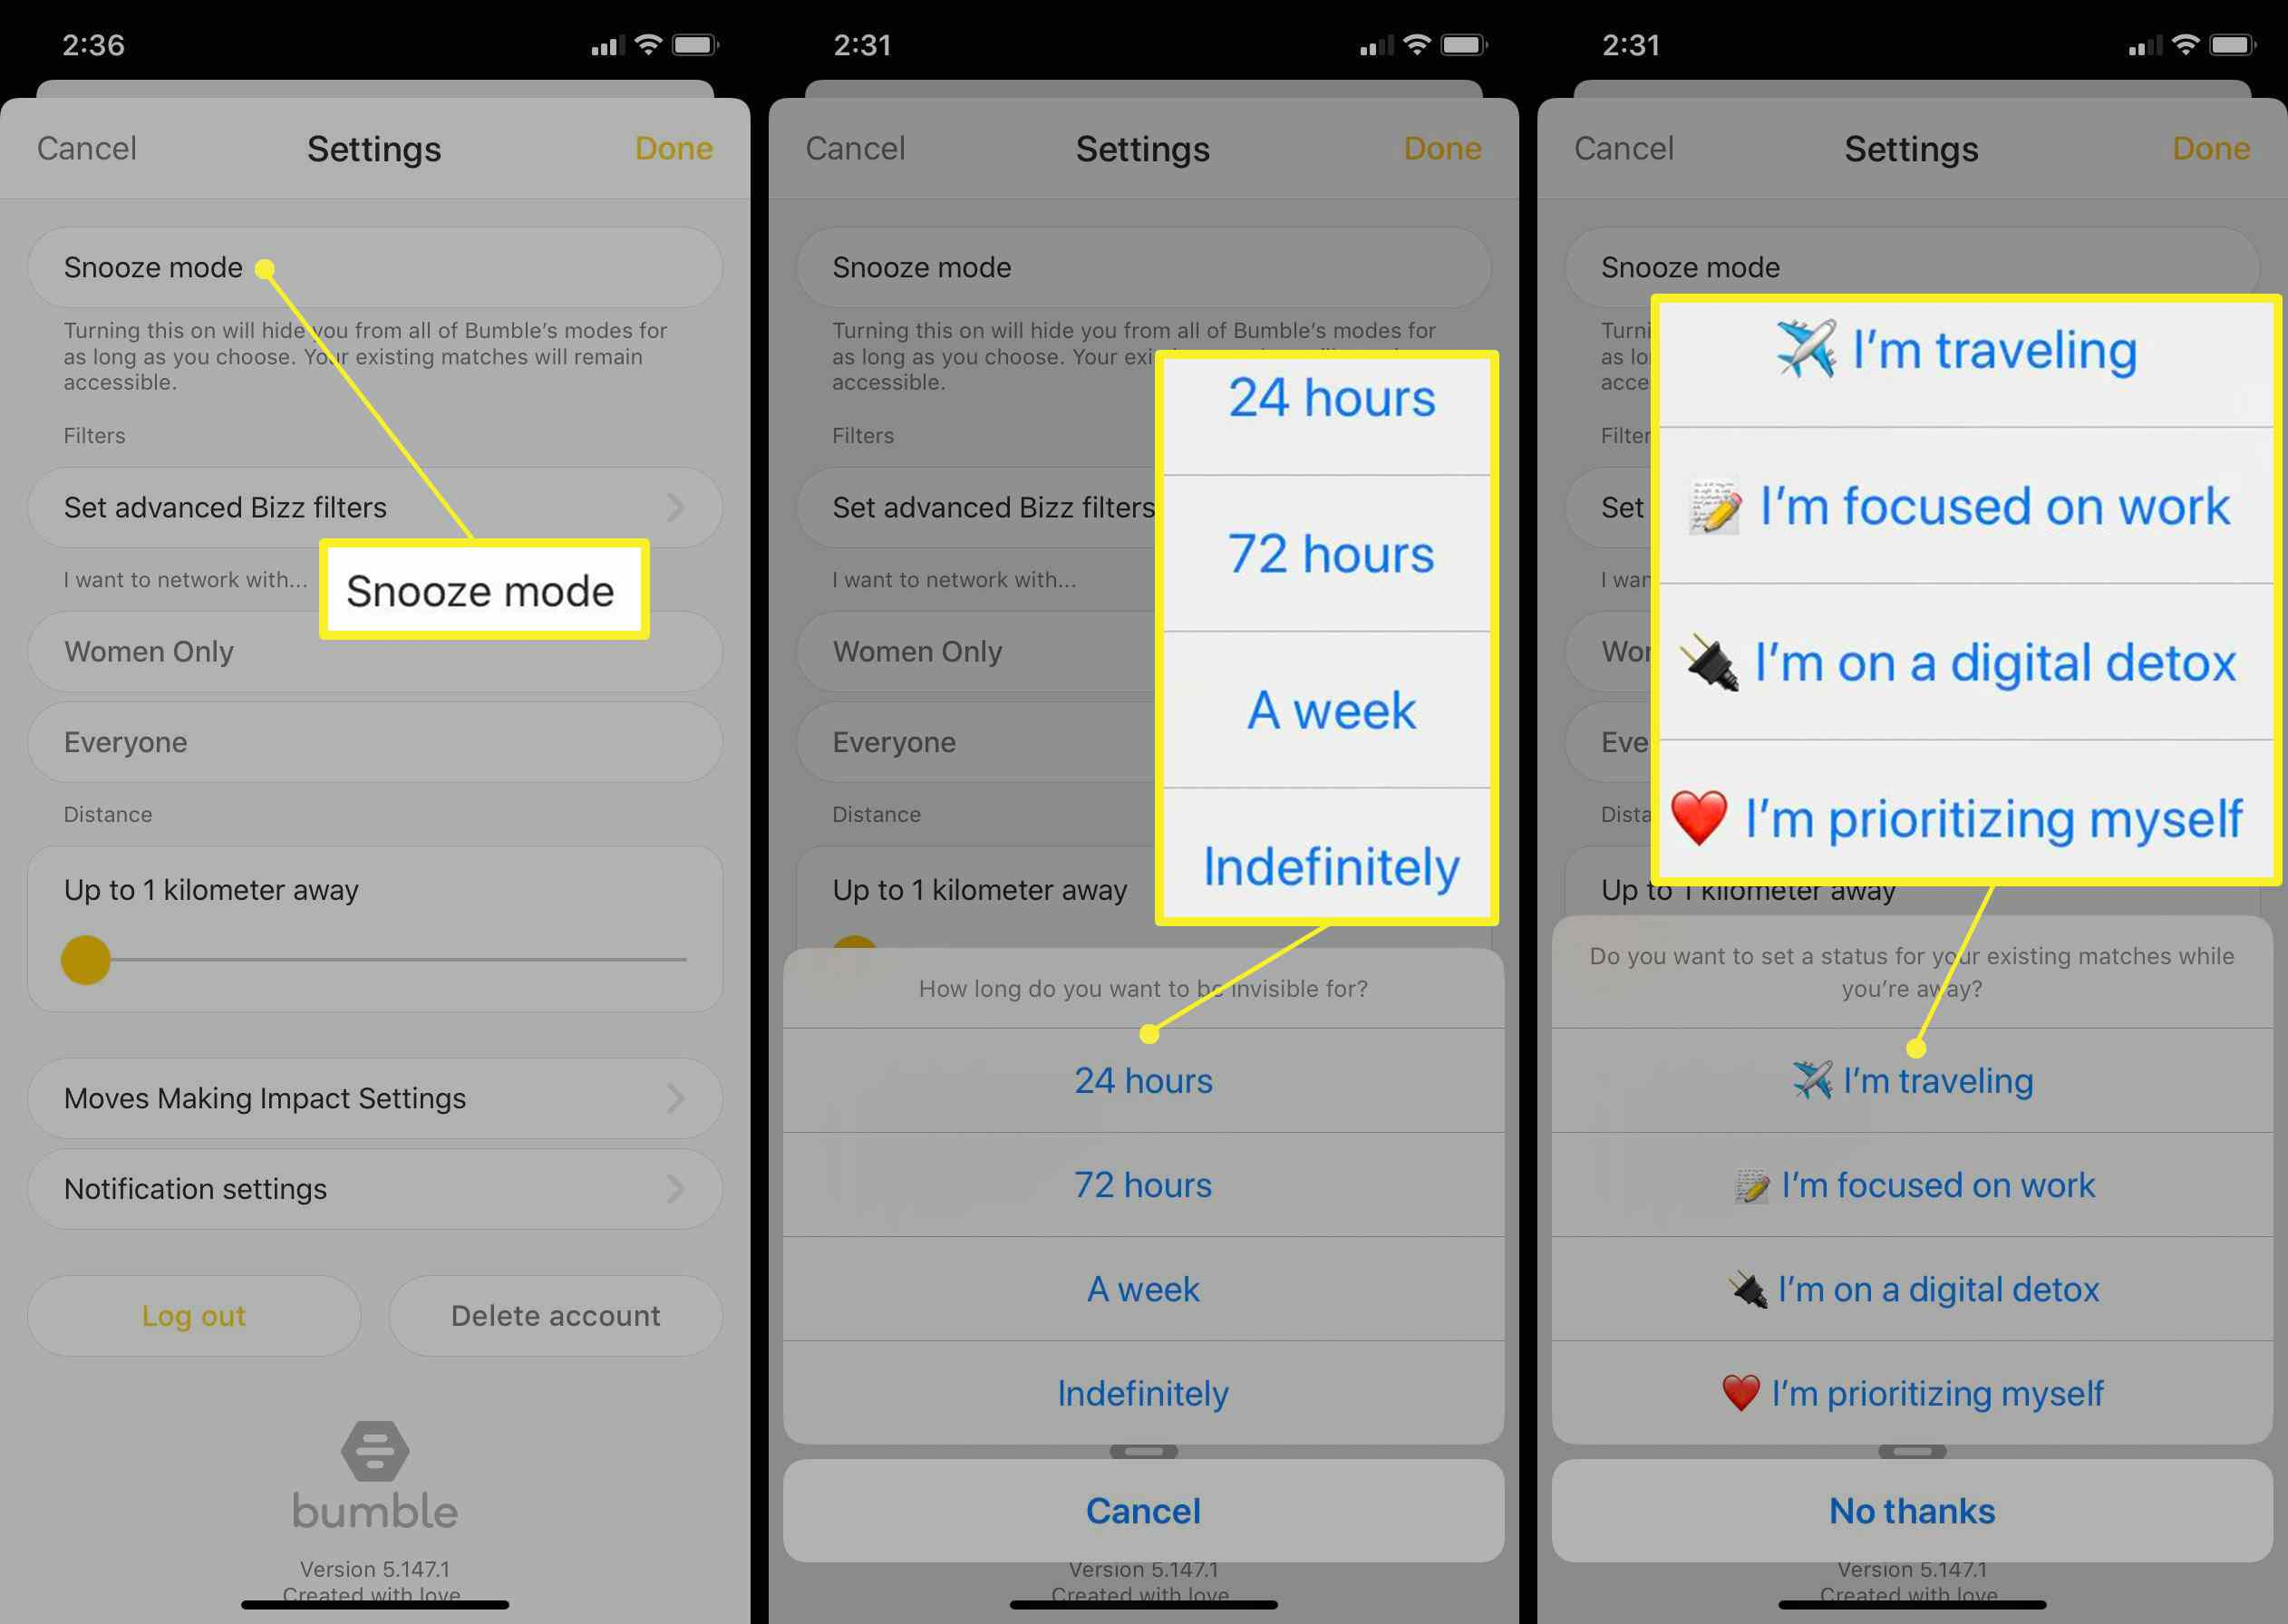 Snooze mode options in Bumble